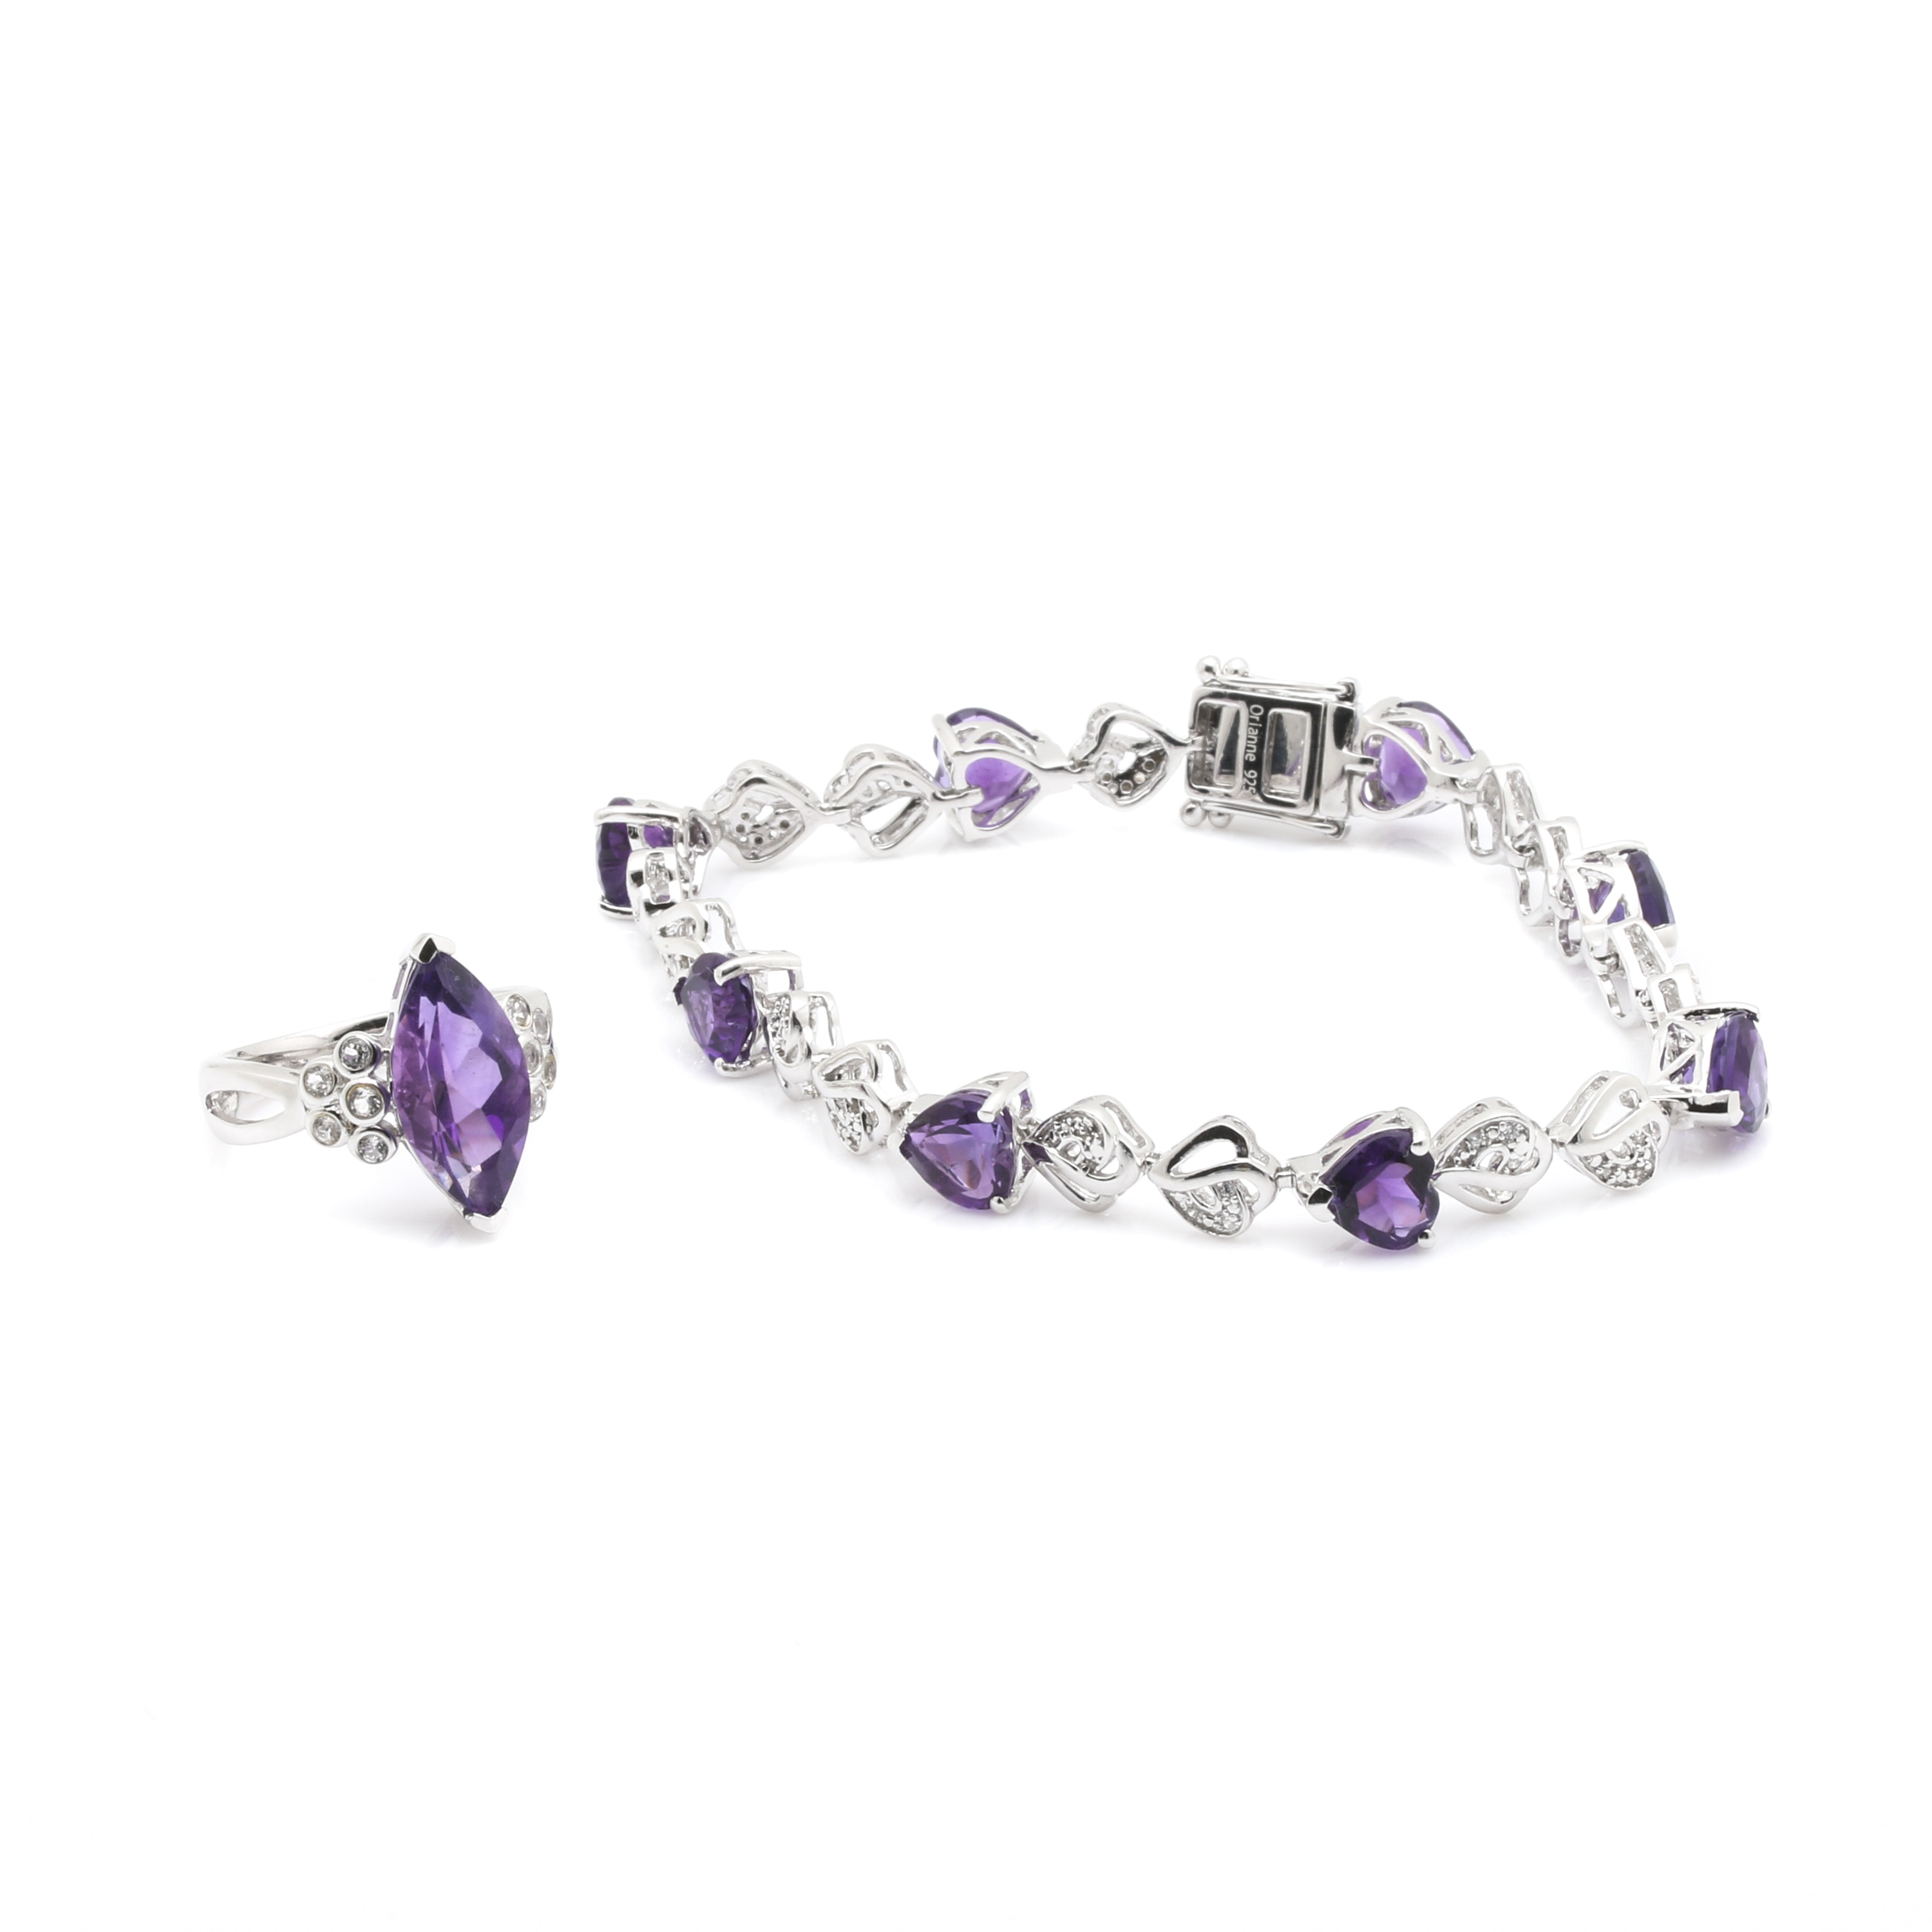 Sterling Silver Amethyst and White Topaz Jewelry